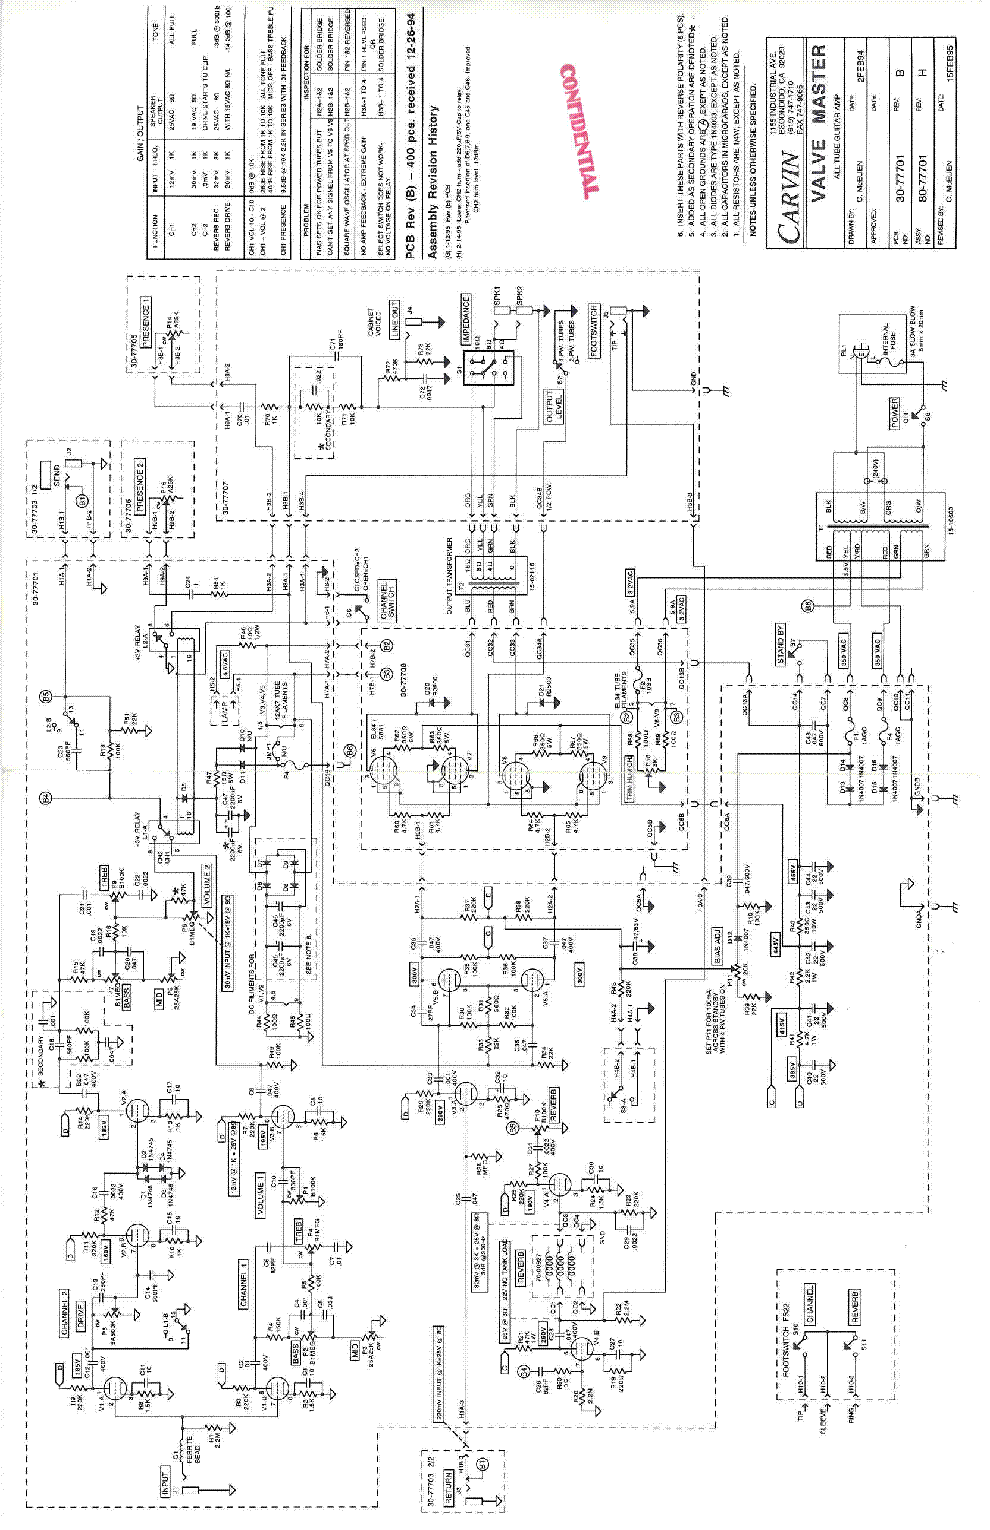 hight resolution of carvin v3 schematic wiring diagram today carvin v3 schematics wiring diagram toolbox carvin v3 schematic